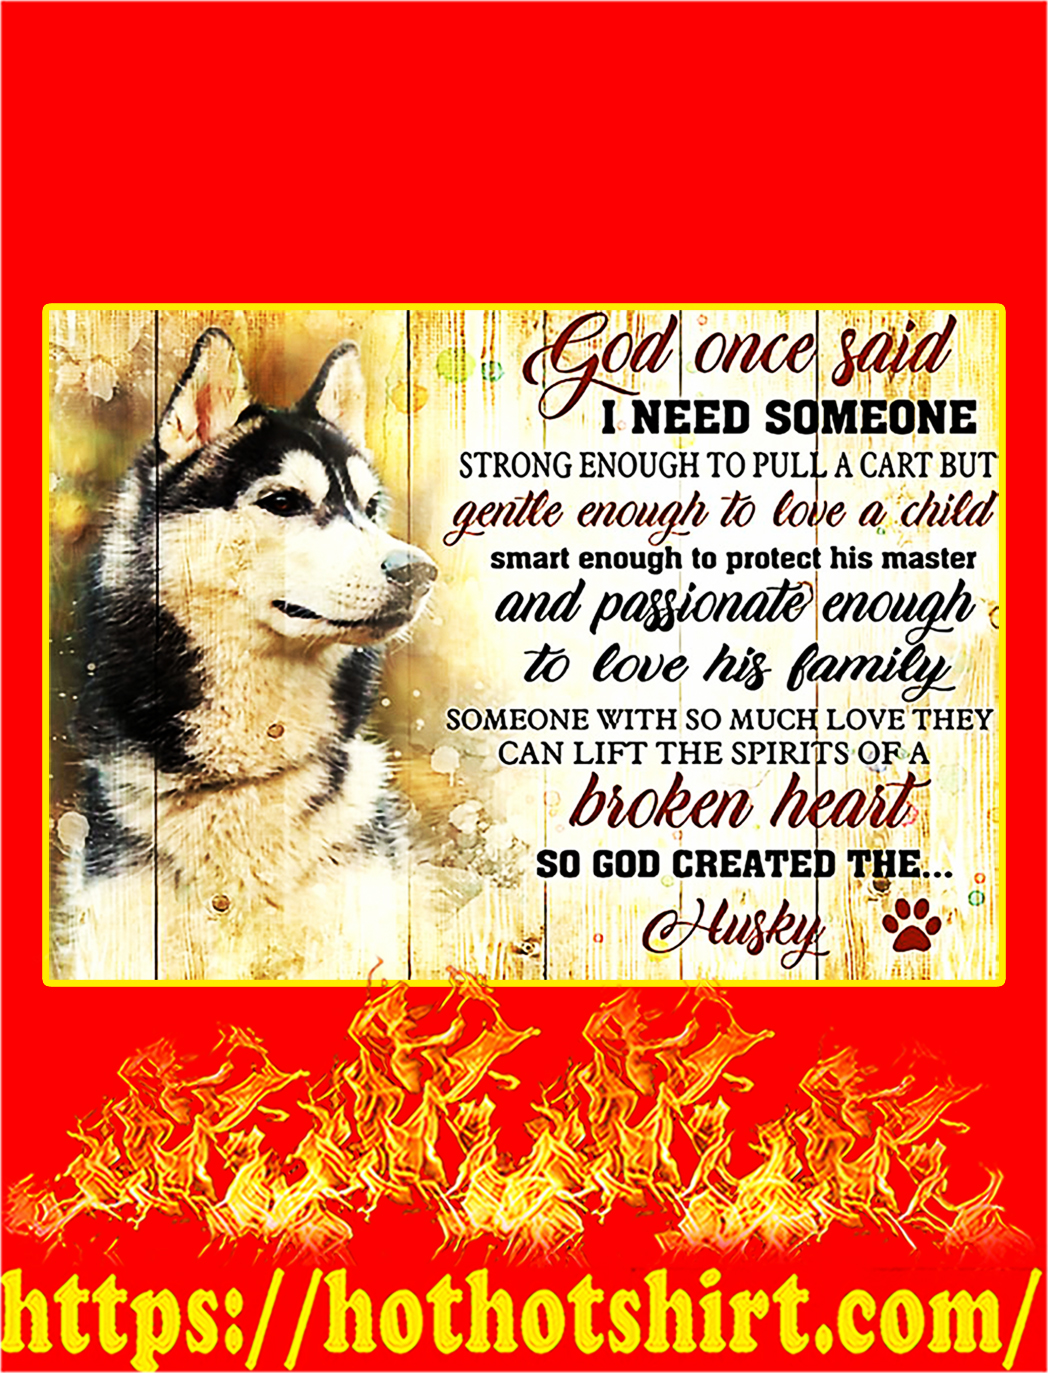 God once said husky poster - A2